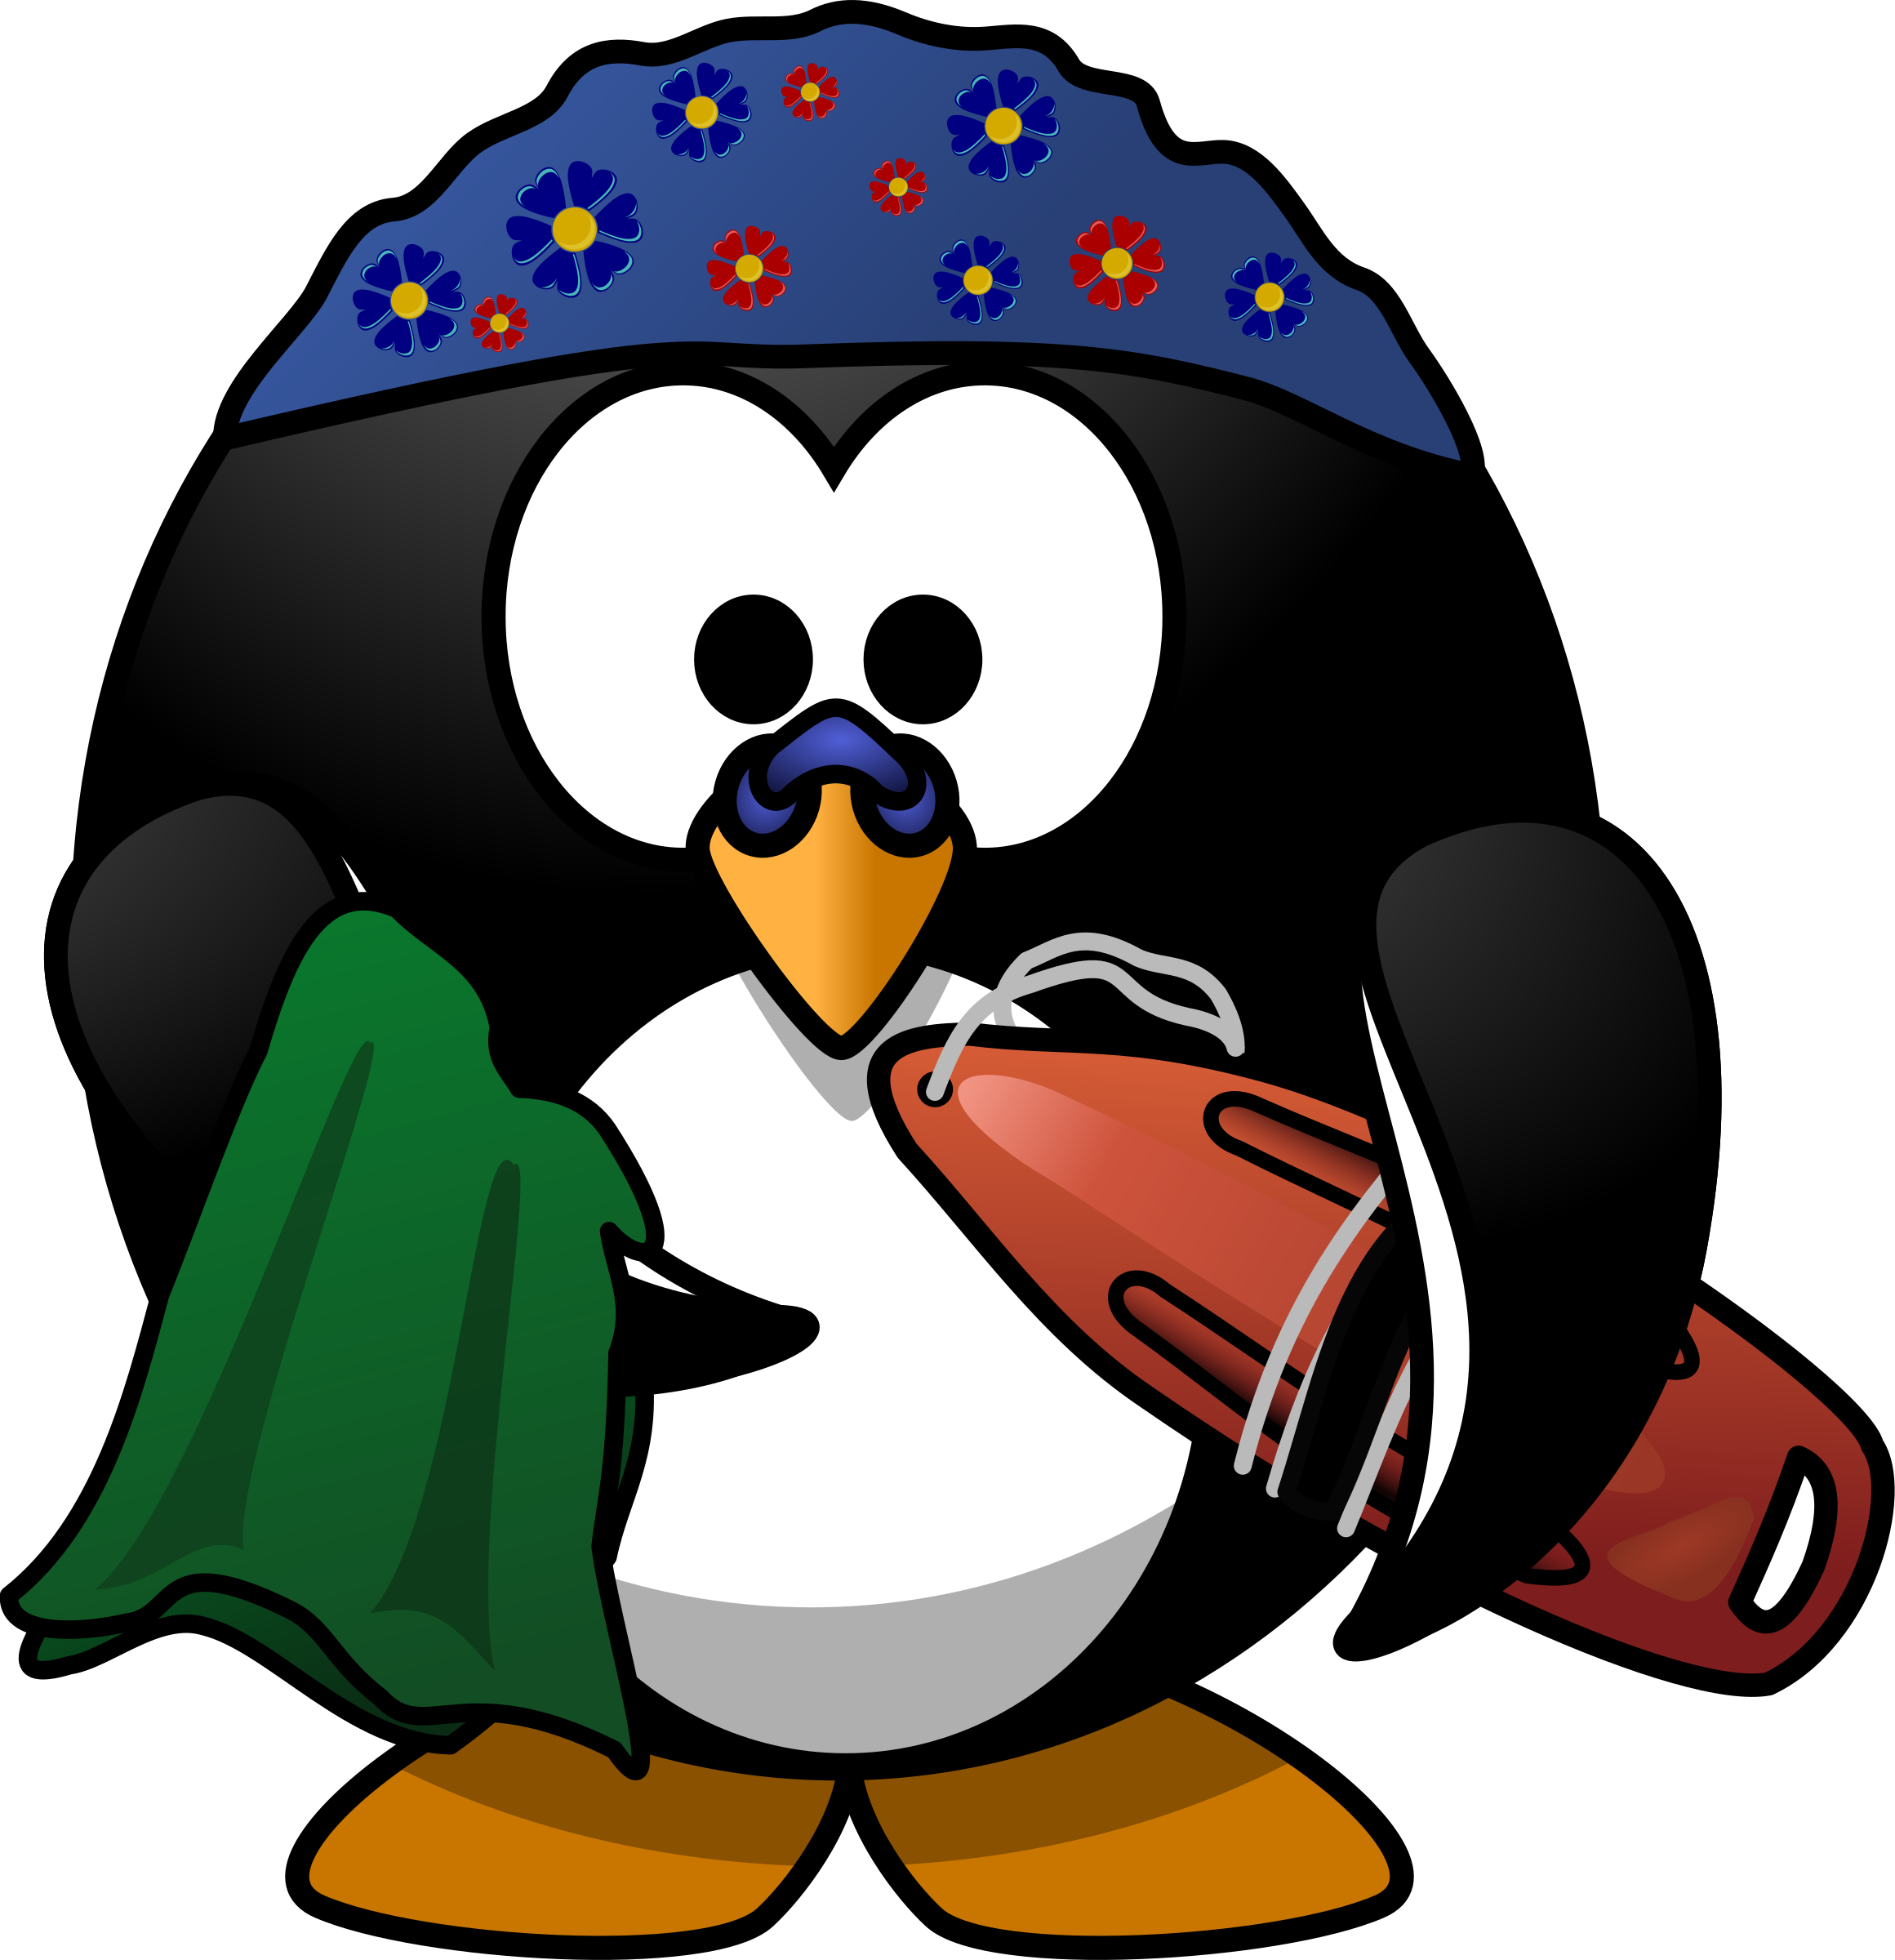 Penguin big image png. Swimsuit clipart swimmer